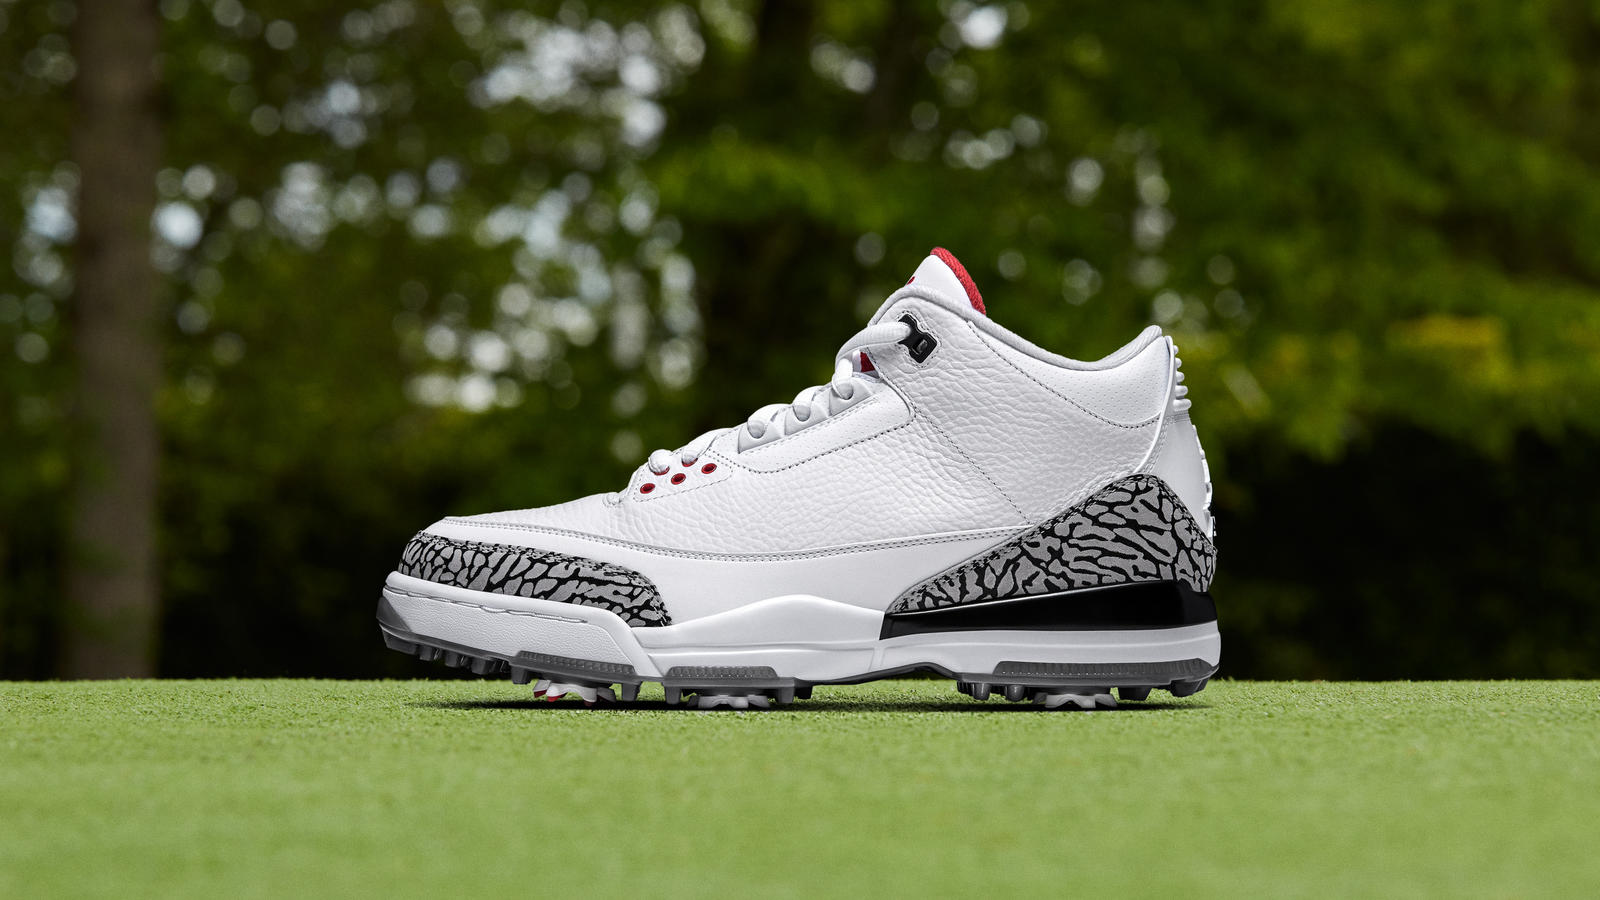 cd65da885a1 Air Jordan III Golf - Nike News